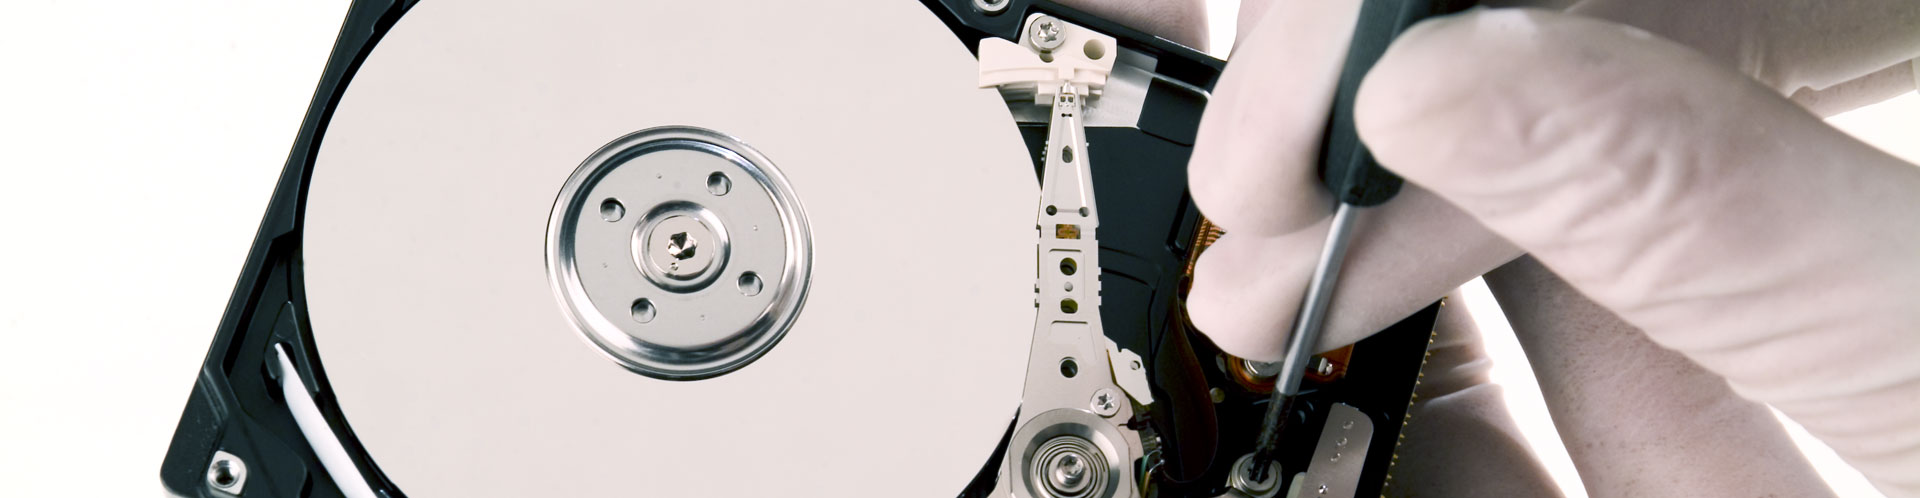 Data recovery experts bangalore